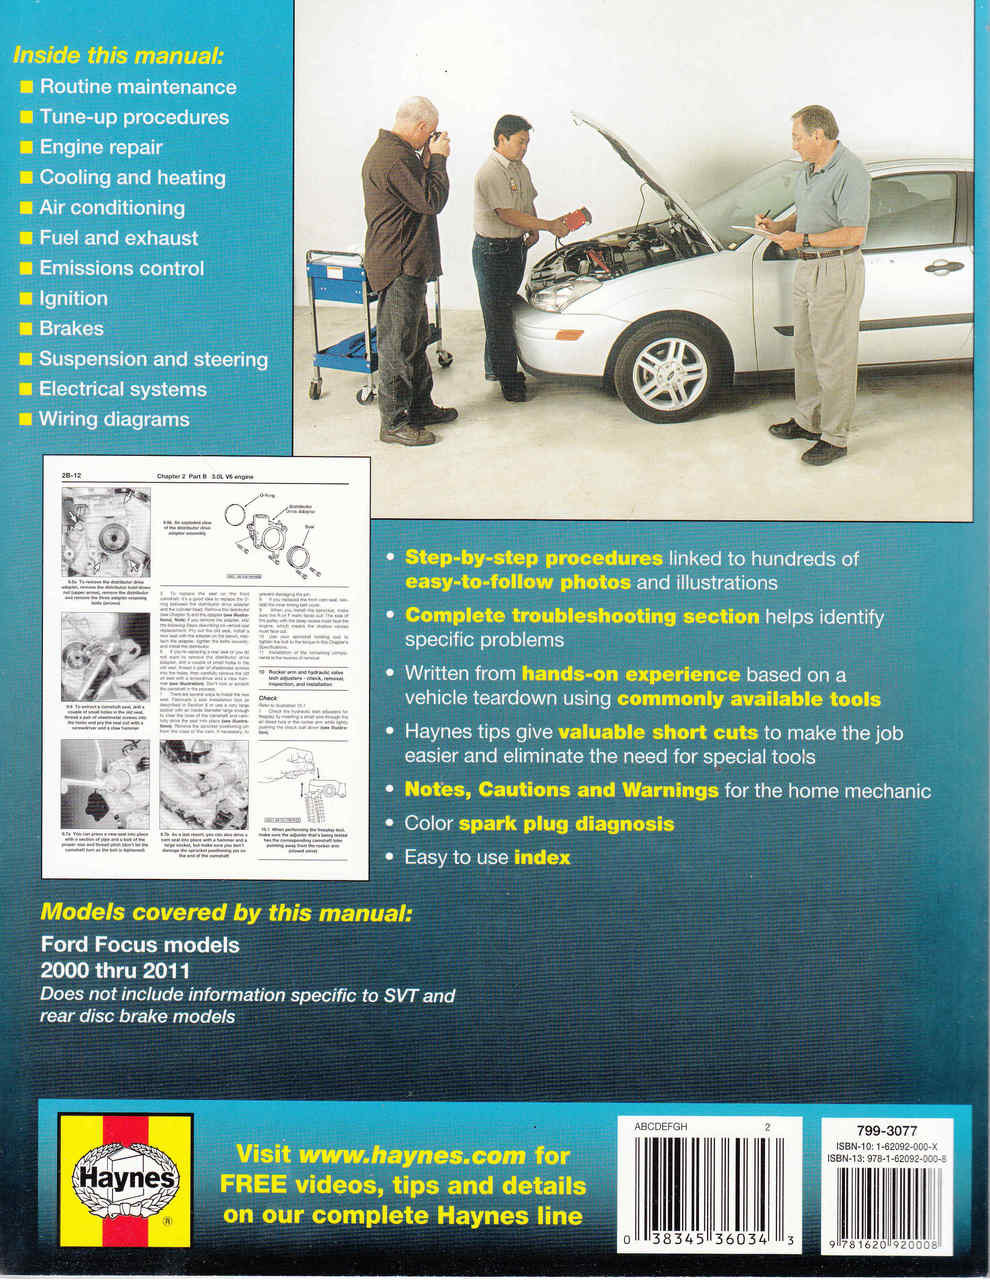 medium resolution of  ford focus 2000 2011 petrol workshop manual 9781620920008